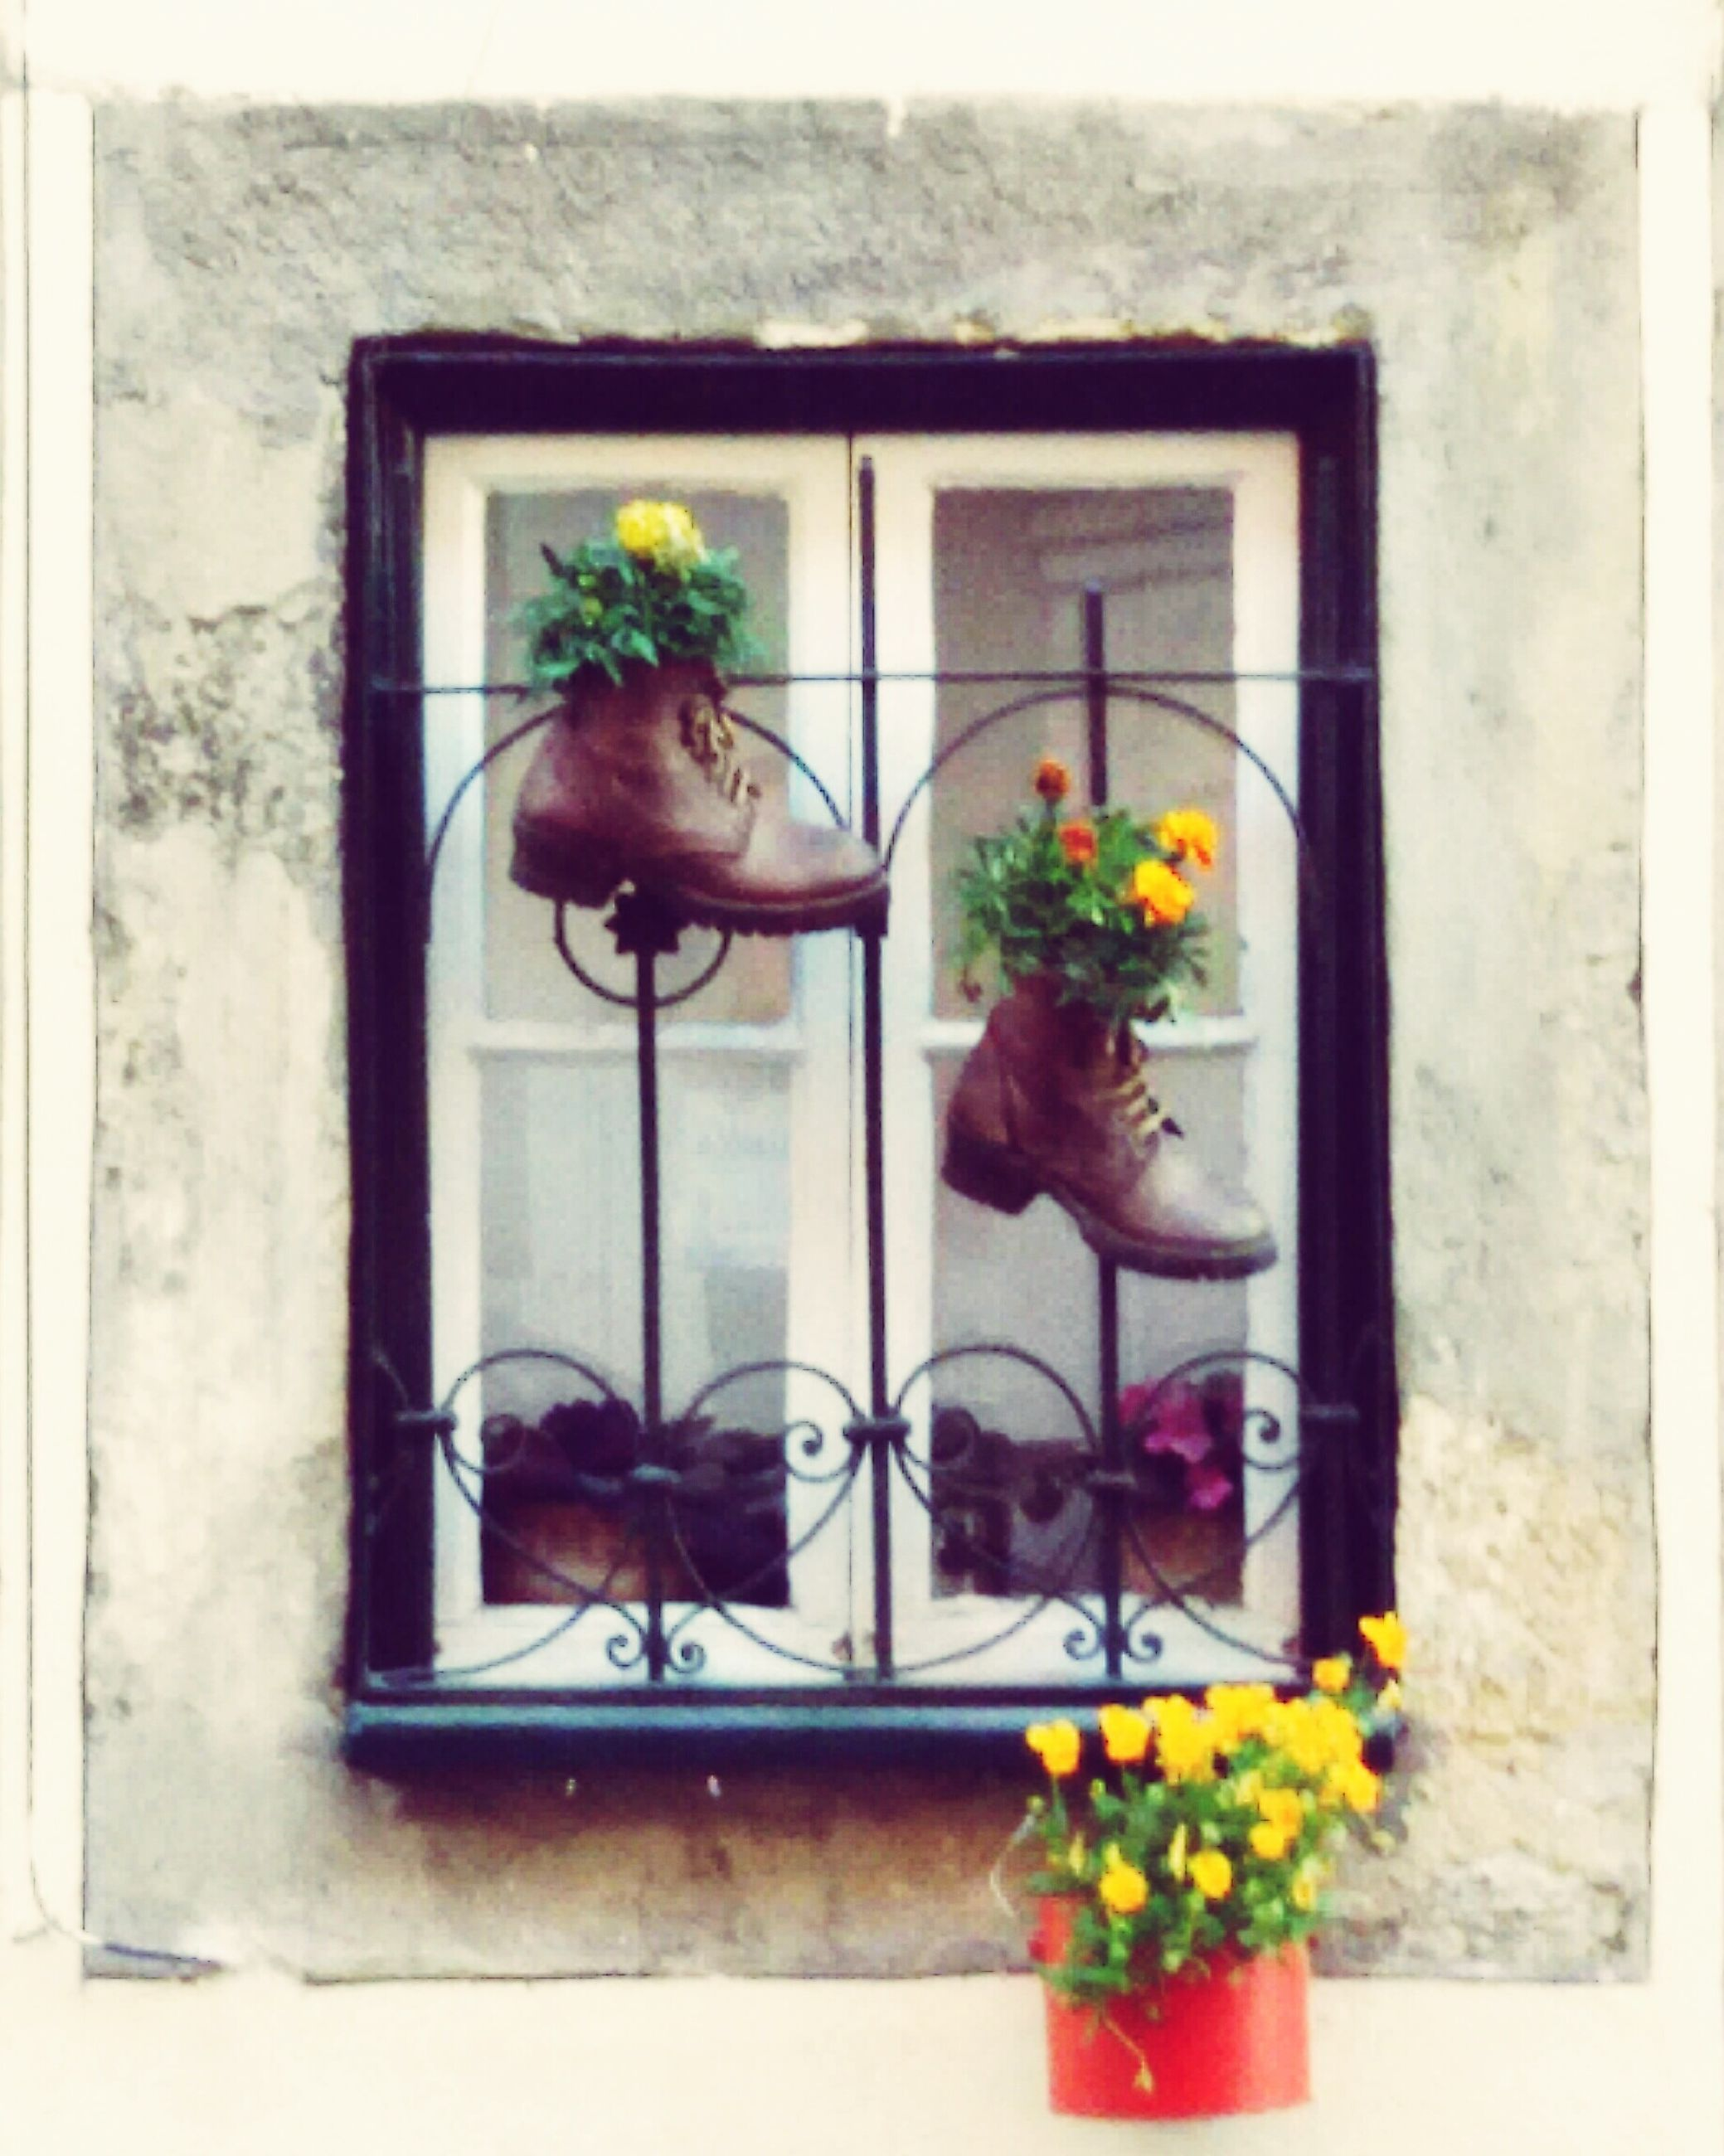 human representation, flower, art and craft, art, potted plant, window, creativity, animal representation, indoors, sculpture, statue, decoration, plant, built structure, vase, wall - building feature, architecture, wall